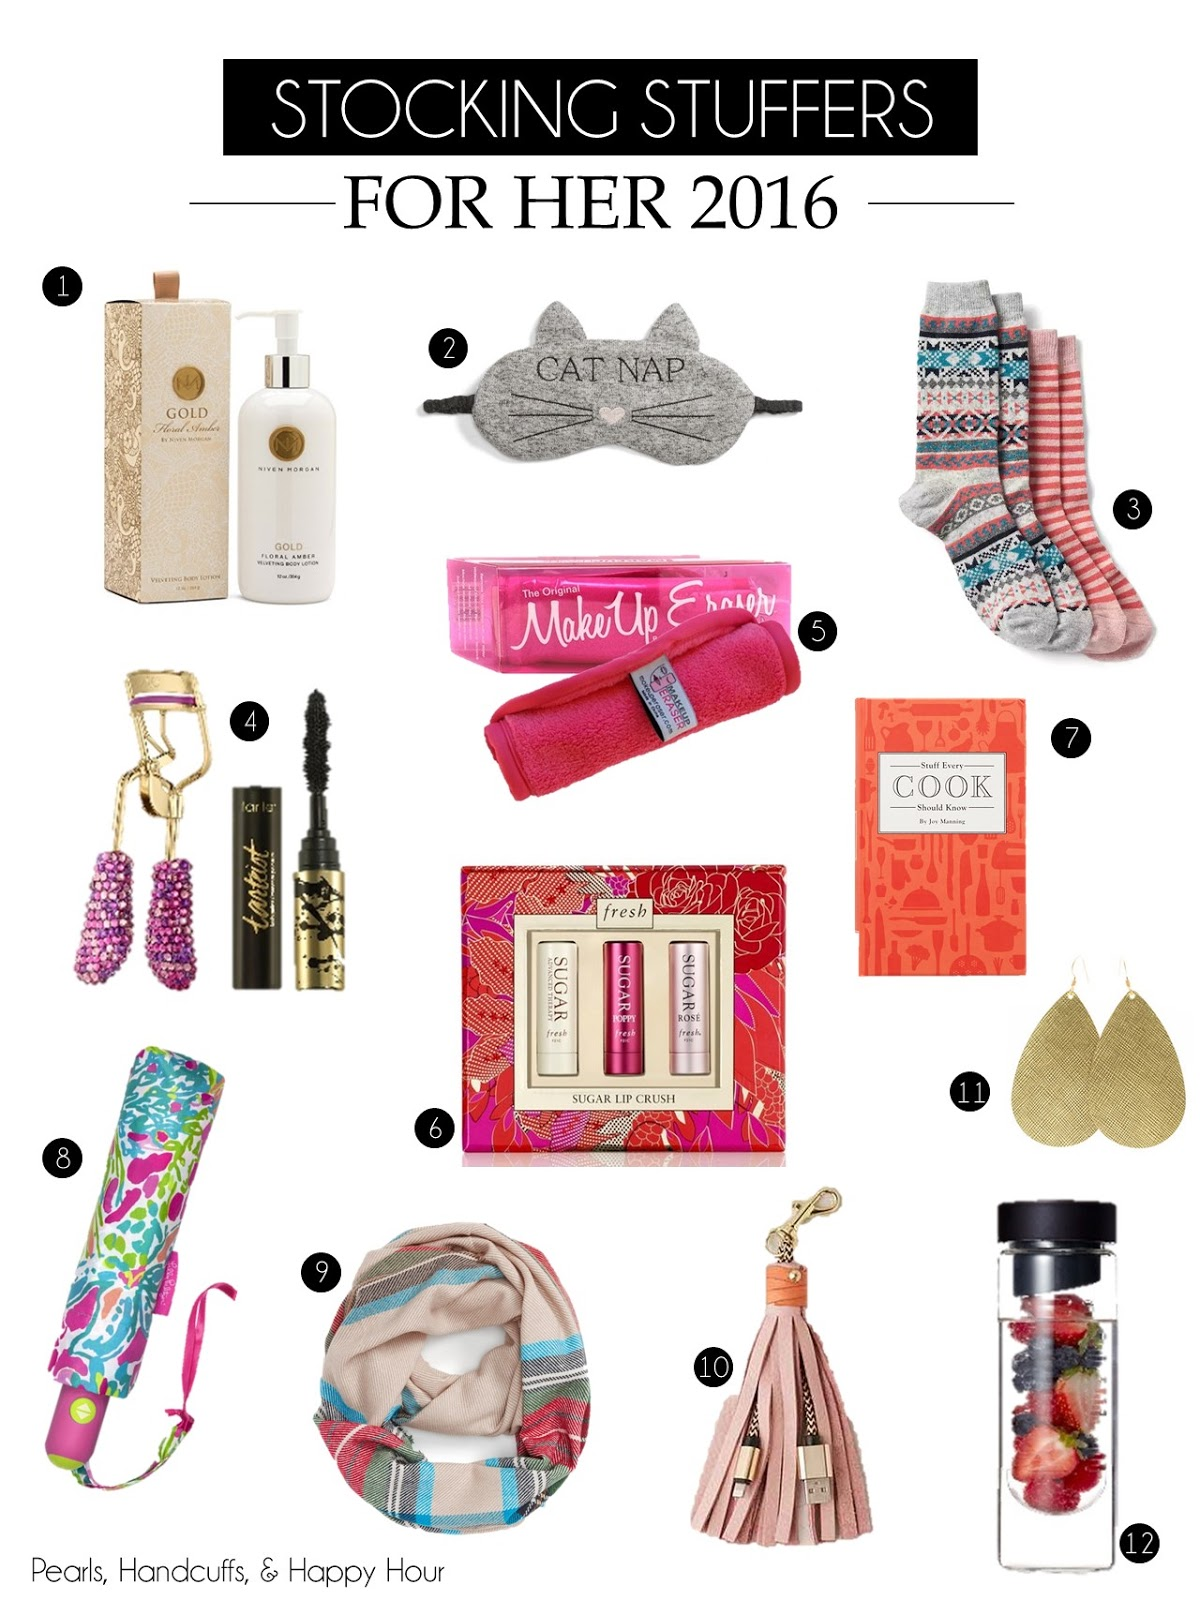 Pearls, Handcuffs, and Happy Hour: Gift Guides & Stocking Stuffers ...